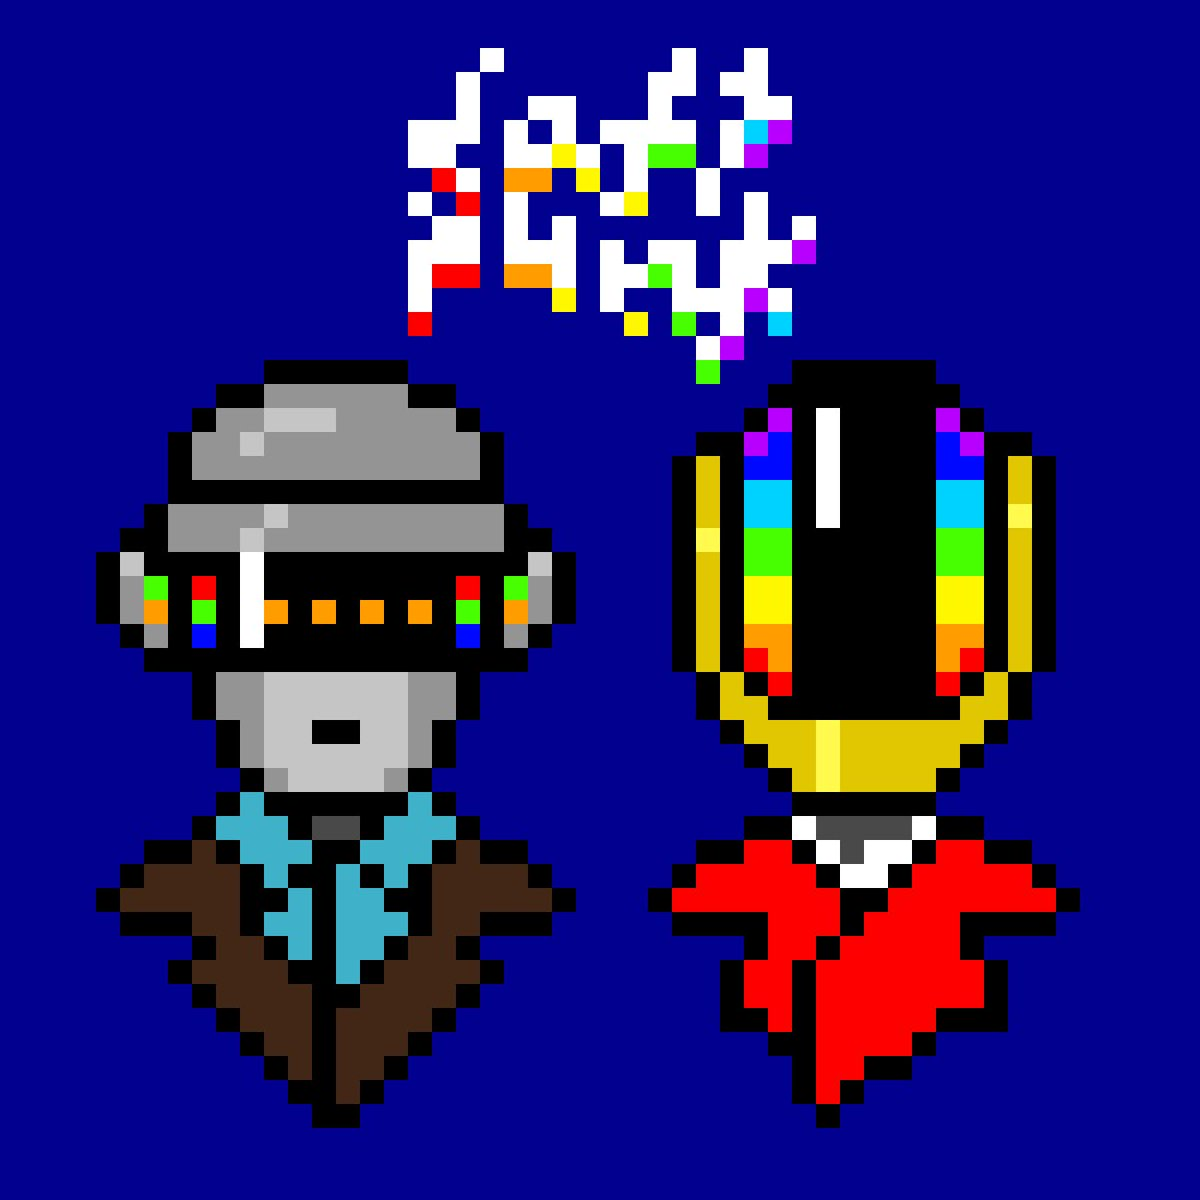 Mimlical: Mimlical: Mimlical: Mimlical: RT @mumu_thestan: One More Time for Daft Punk  I used to steal my brother's Discovery cassette all the time, along with his Linkin Park Reanimation cassette. 😭🤖  #DaftPunkForever #DaftPunk #pixelart #mumudrawss…